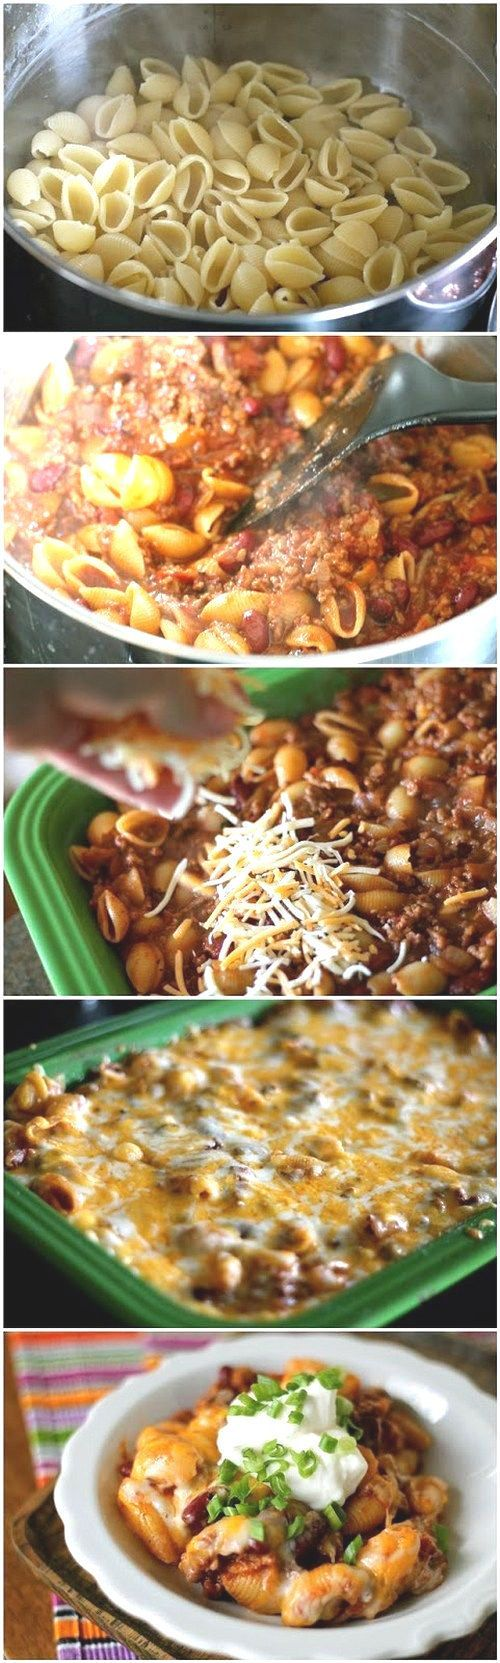 Chili Pasta Bake // Perfect for Dinner Dish for Chilly Weather